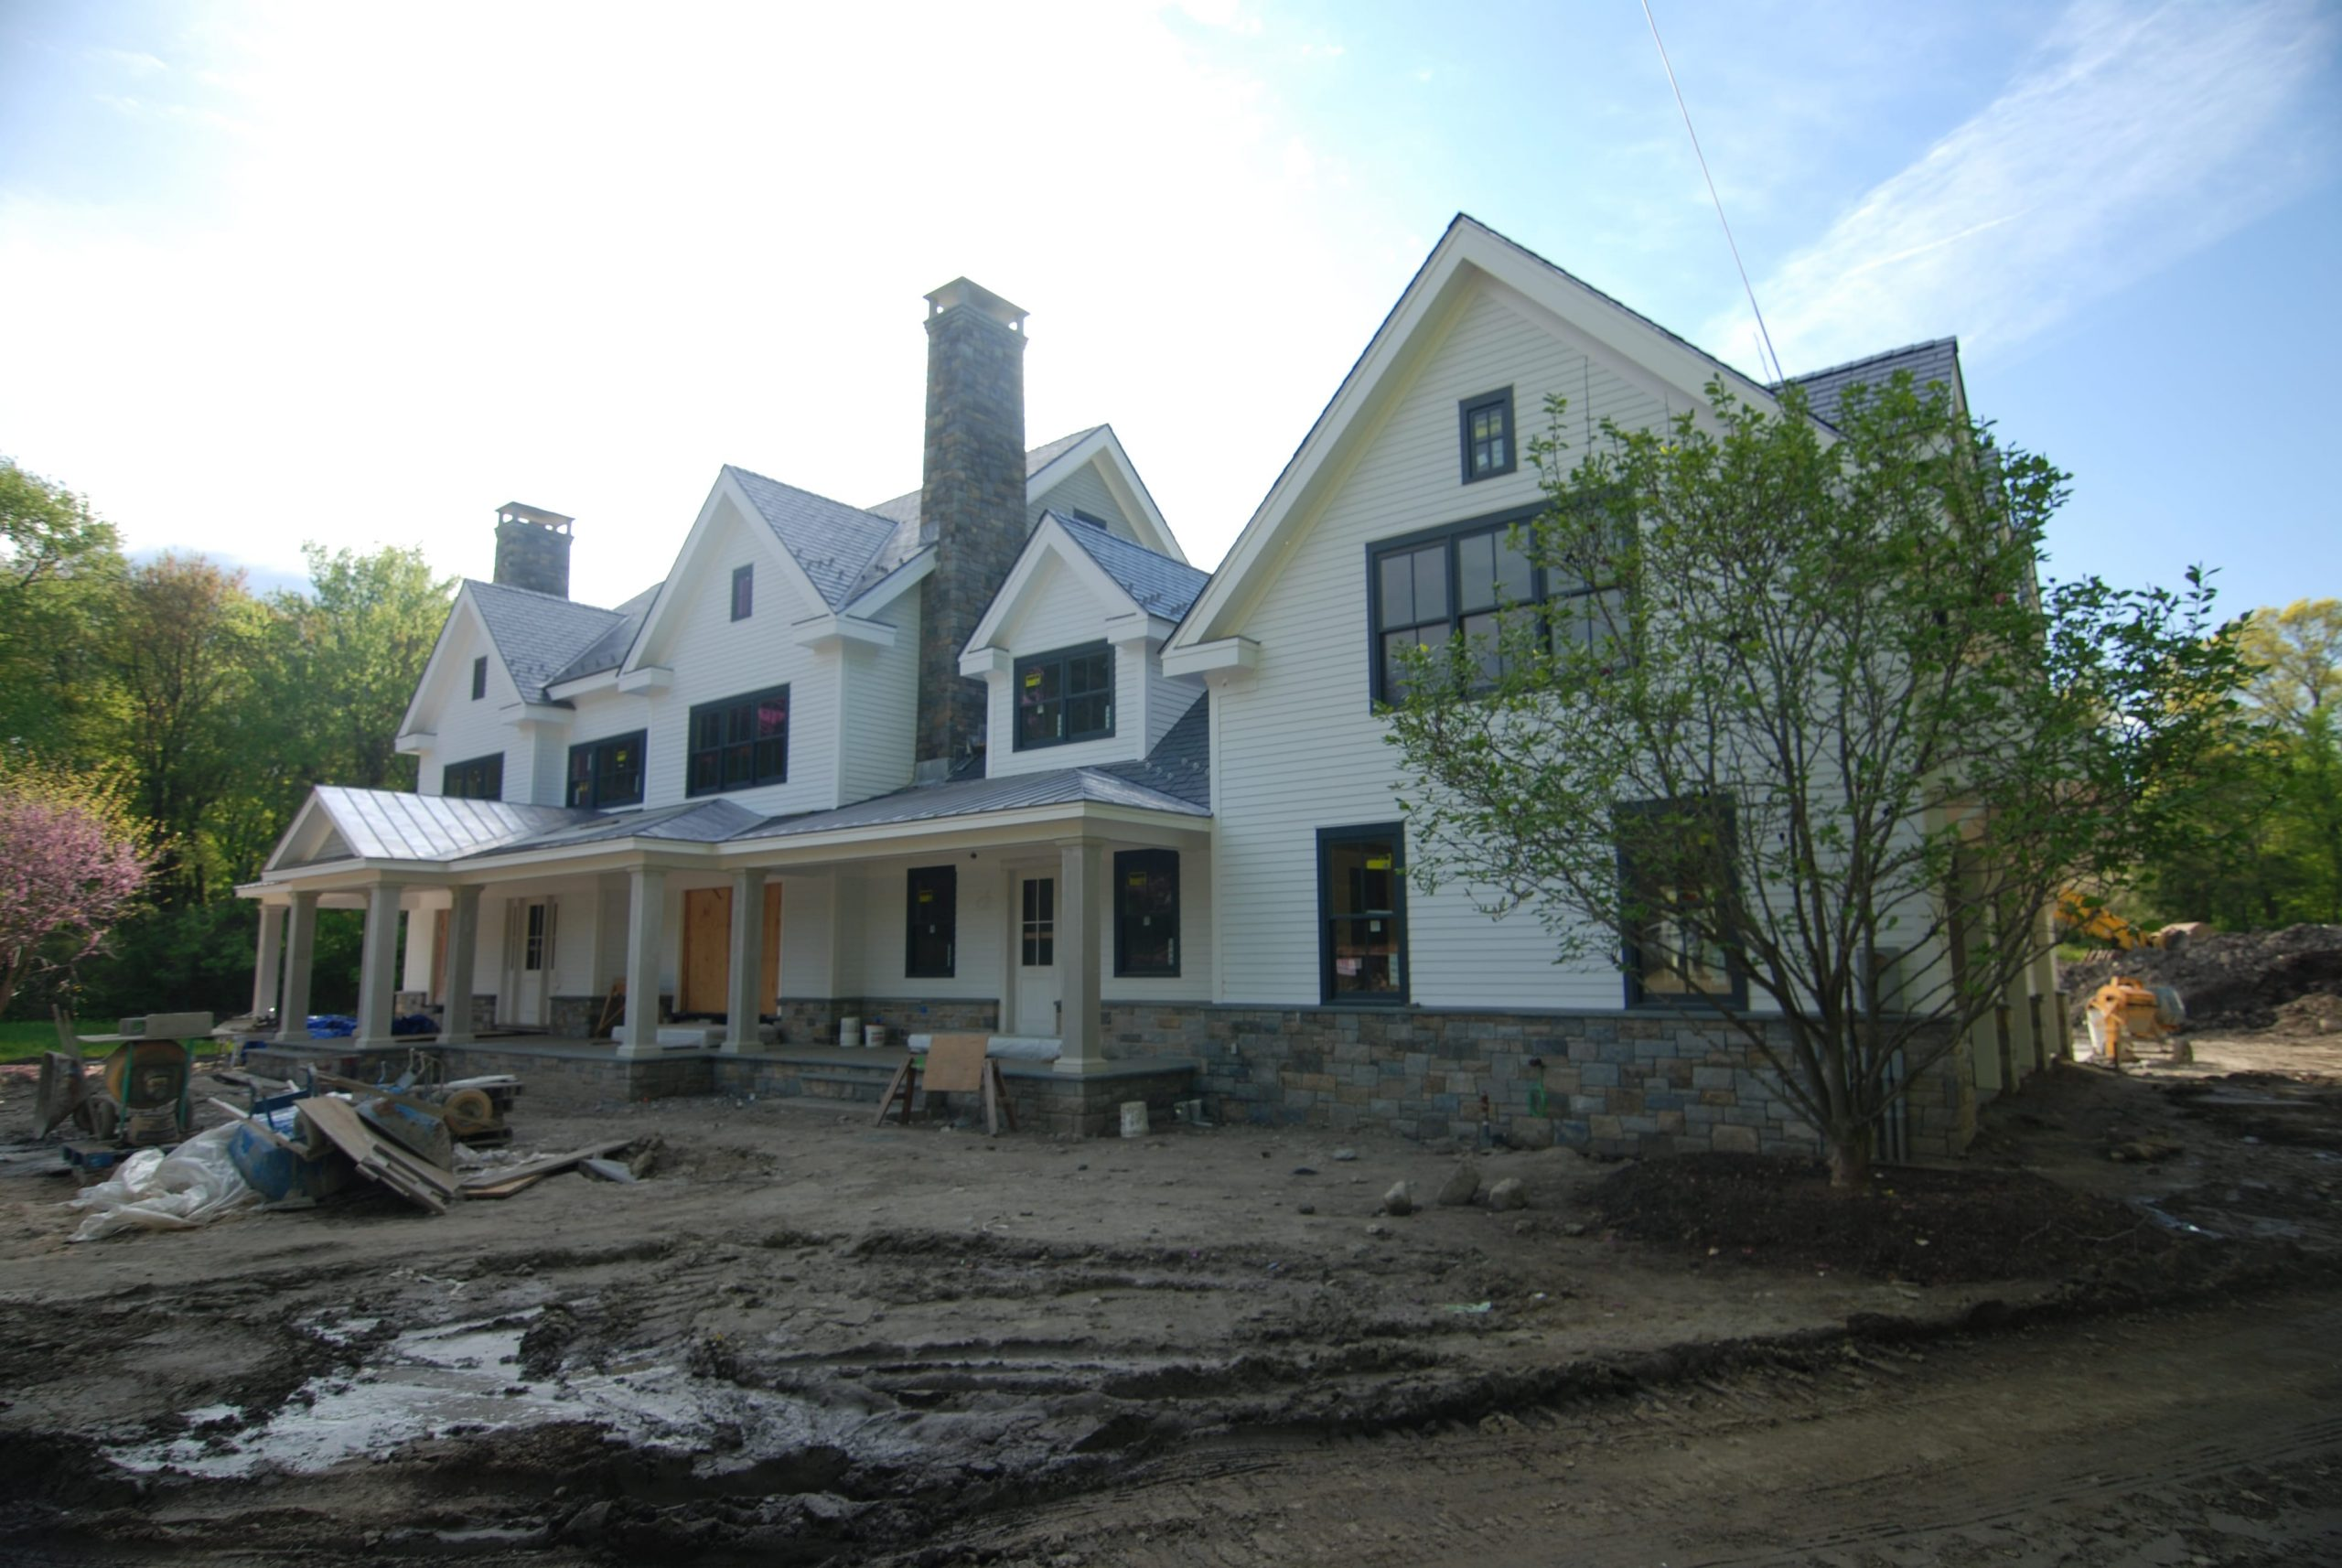 7 greenwich ct home construction in progress